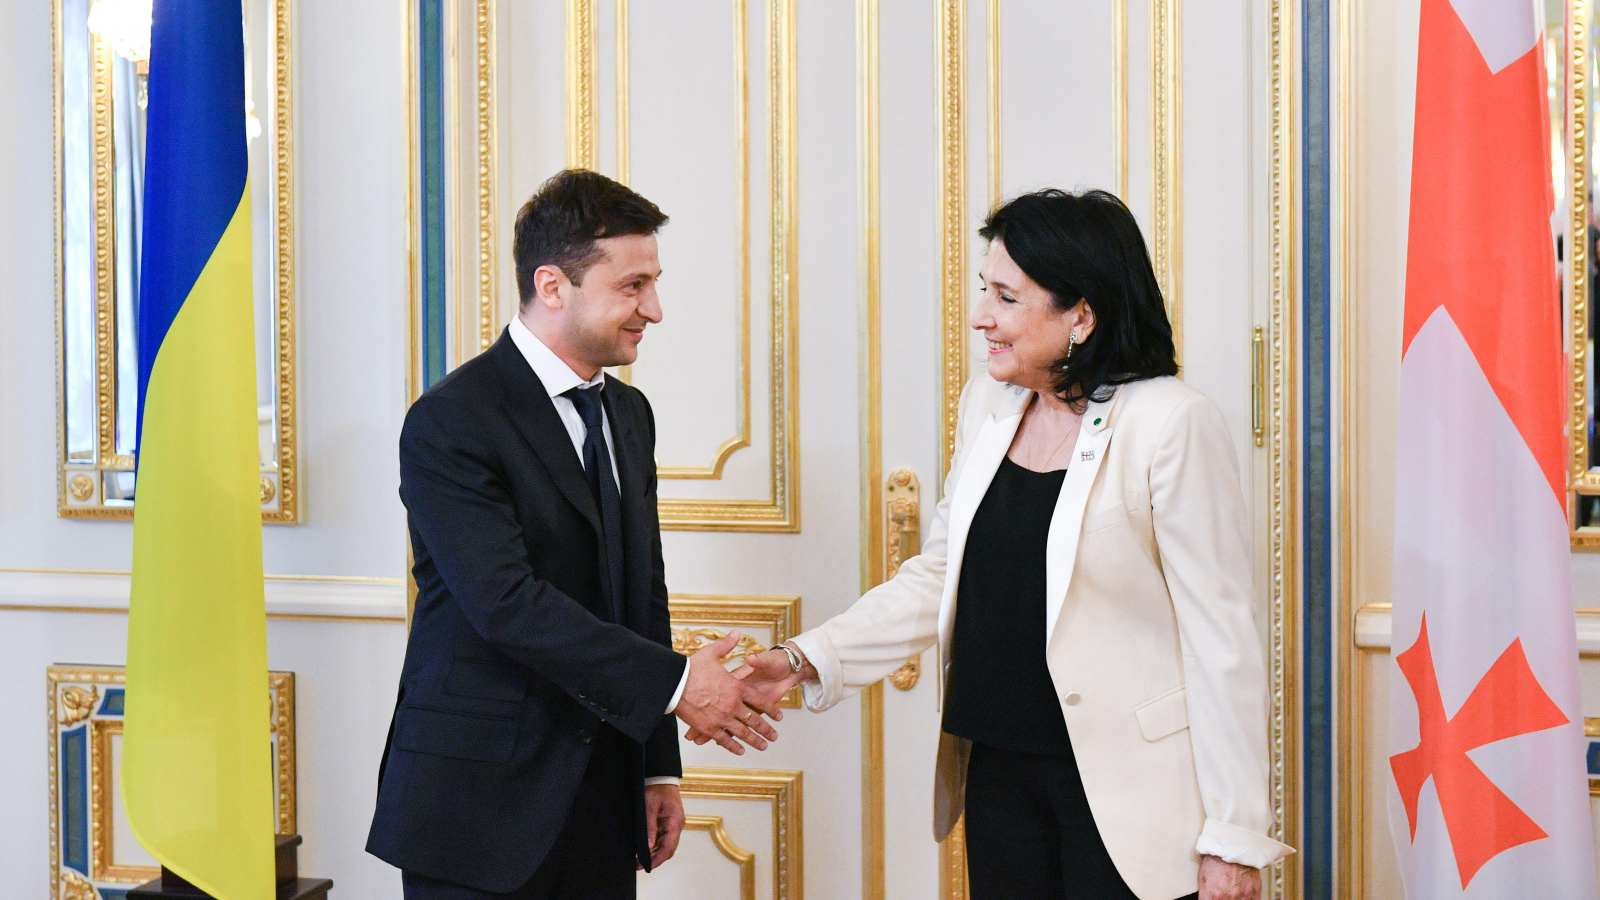 Photo: Volodymyr Zelensky with Salome Zourabichvili. Credit: Wikimedia Commons